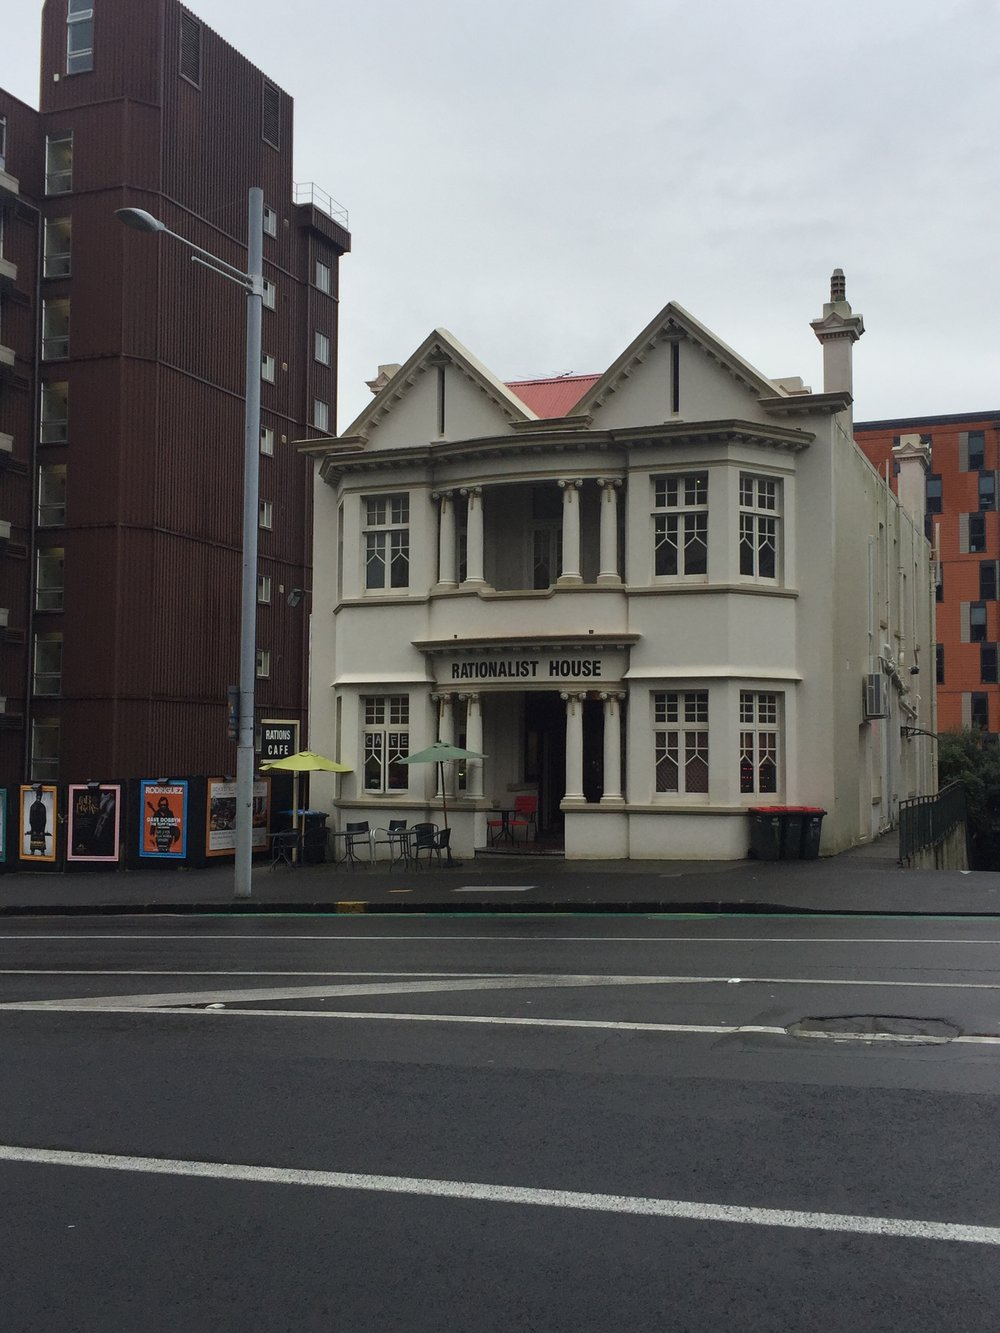 The Rationalist House in Auckland, just one of the member orgs in Humanists International